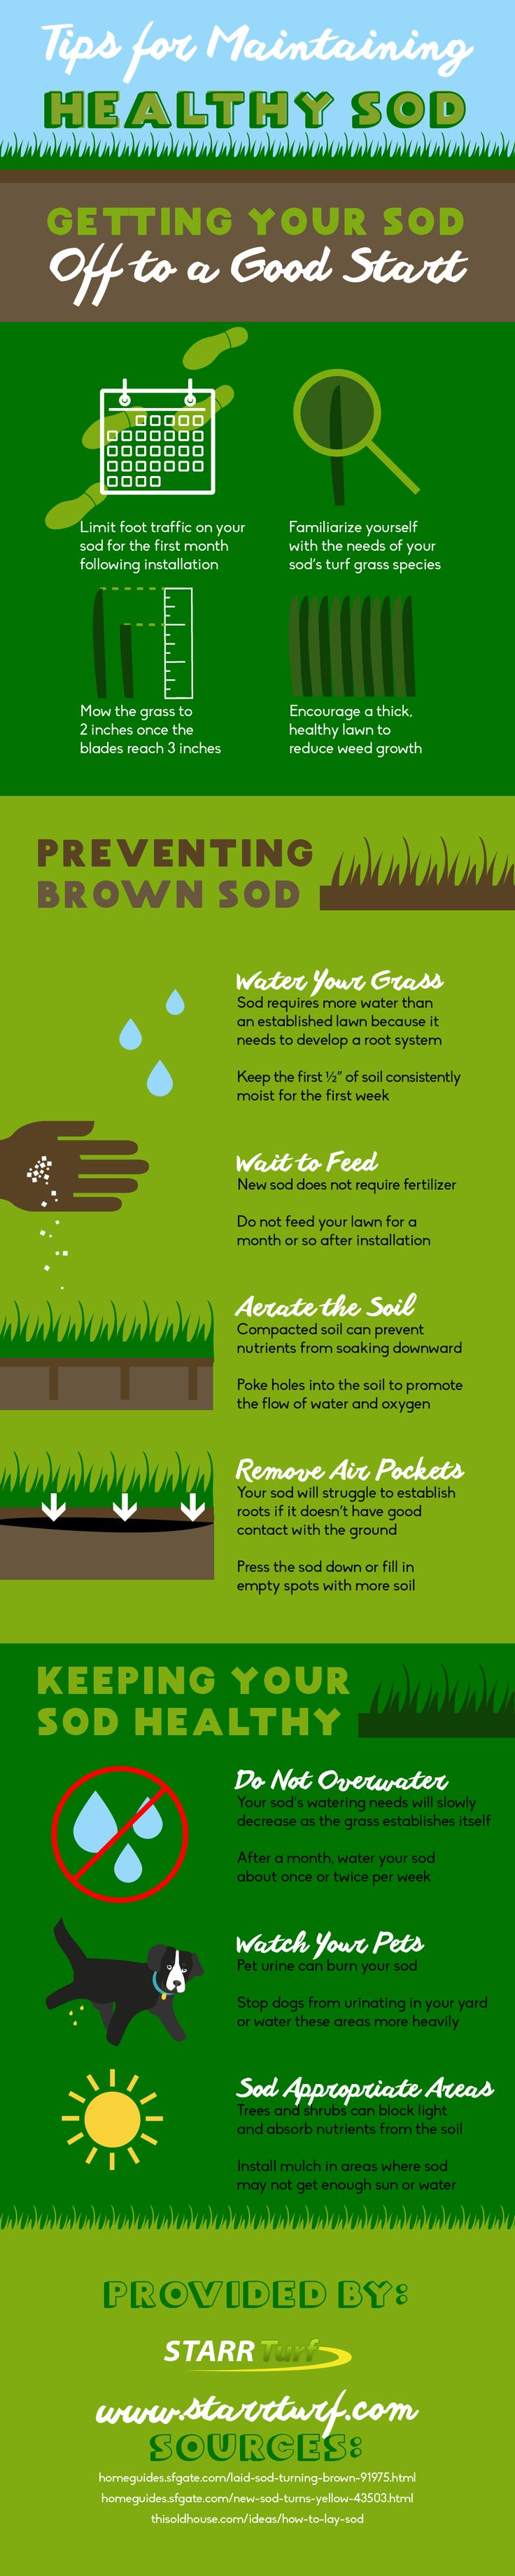 Best way to plant grass seed - Laying Sod Provides Home And Business Owners With An Excellent Way To Enjoy The Benefits Of A Beautiful Lawn Without The Need For Planting Grass Seeds And